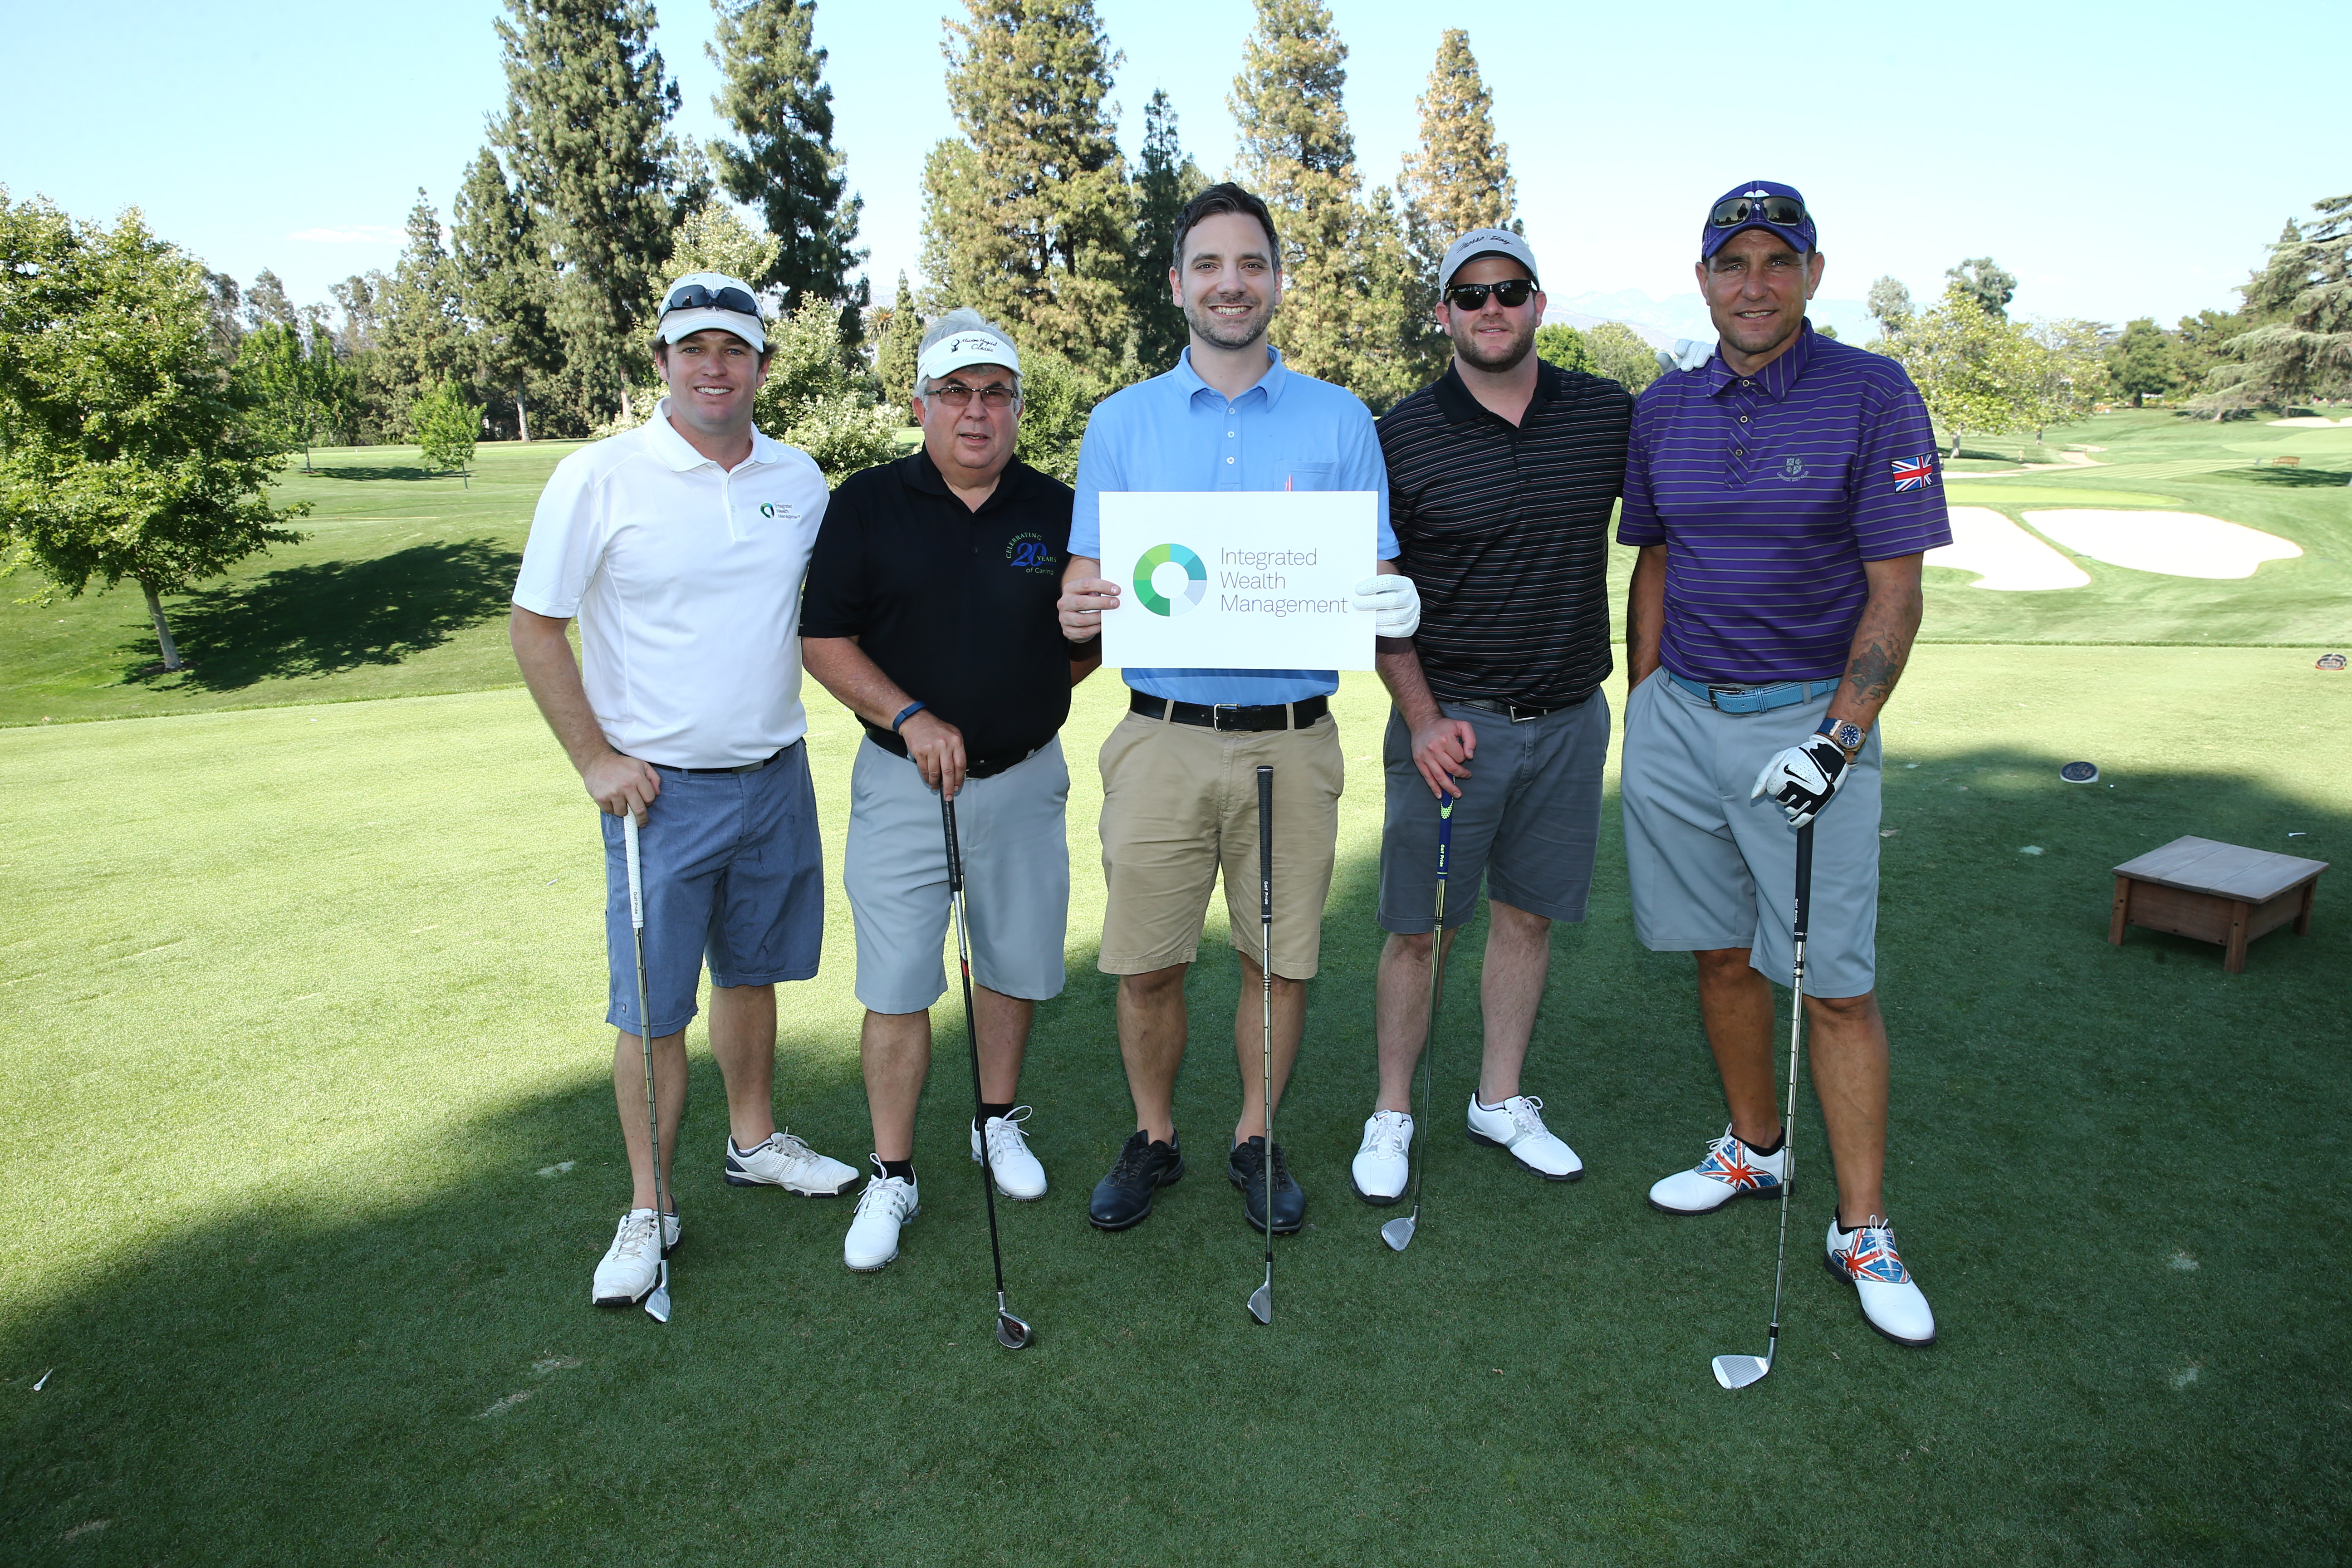 Brandt Kuhn, C.R. Burke, Craig Yakelis, Vince Bonafede and Vinnie Jones of Team Integrated Wealth Management play at the Screen Actors Guild Foundation's 6th Annual Los Angeles Golf Classic on June 8, 2015 in Burbank, California. (Photo by Mark Davis/Getty Images for The Screen Actors Guild Foundation)